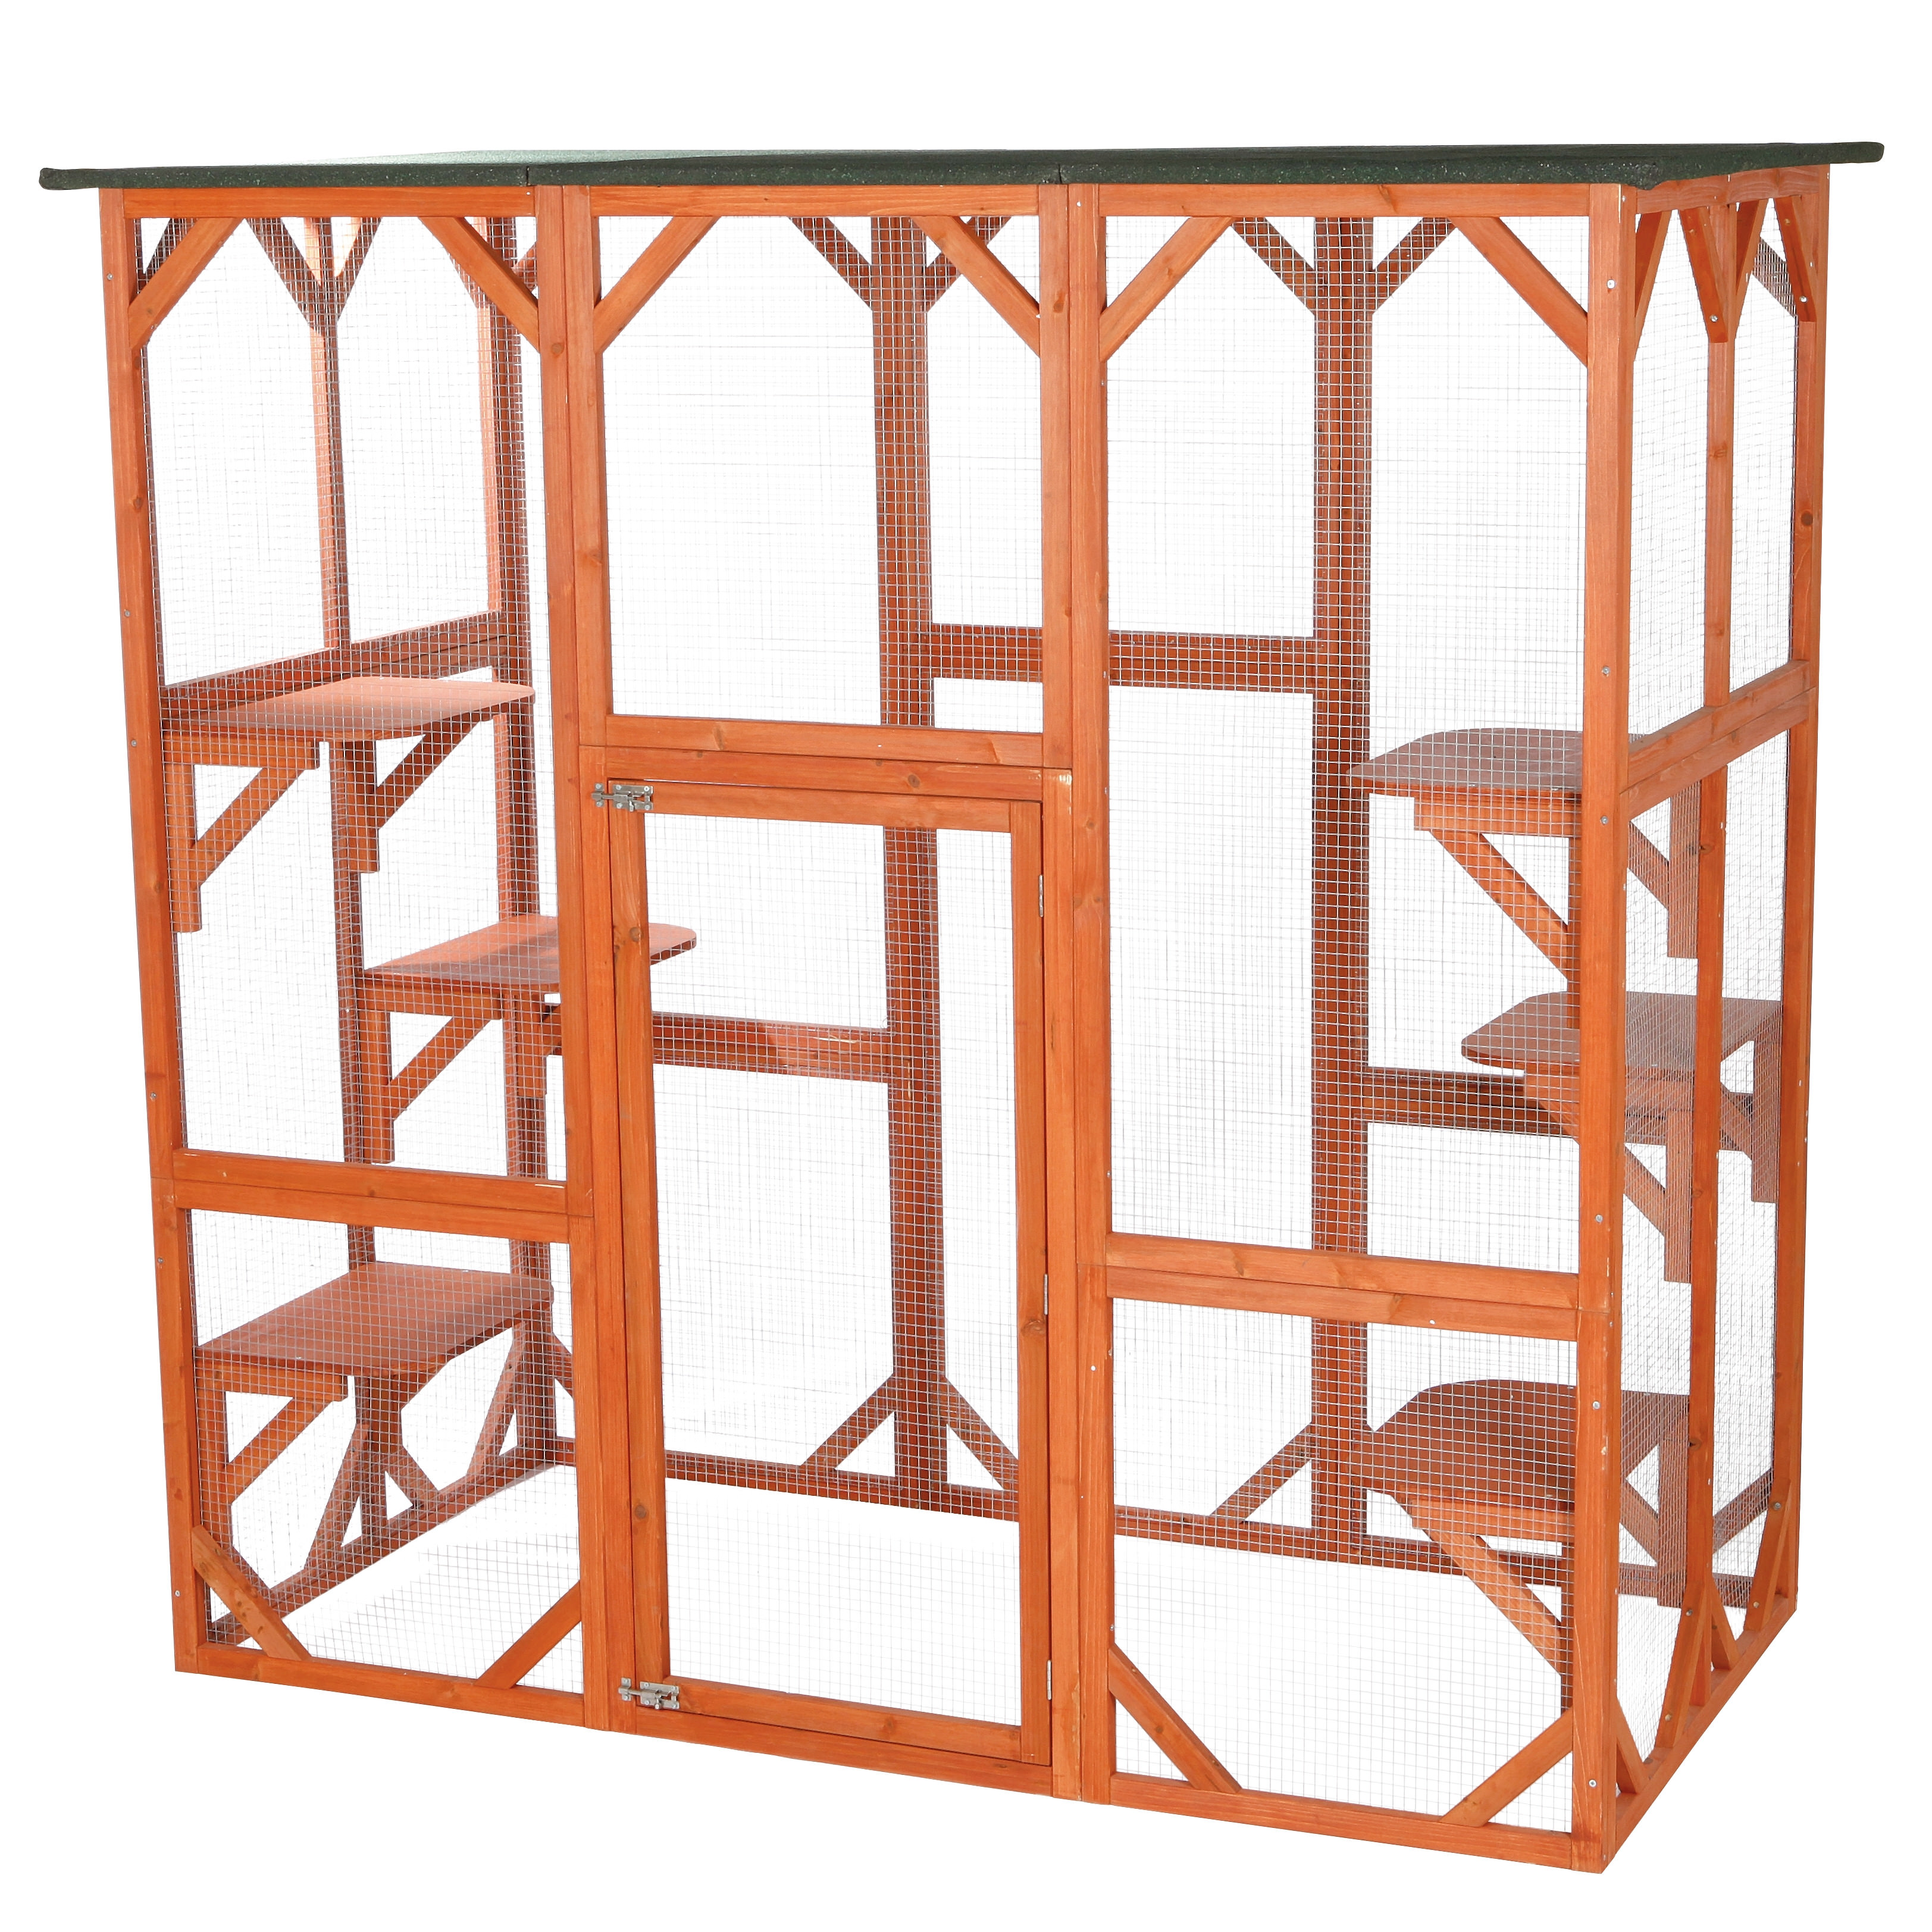 Trixie Wooden Outdoor Cat Sanctuary, 70.75 x 70.75 x 38.50 In